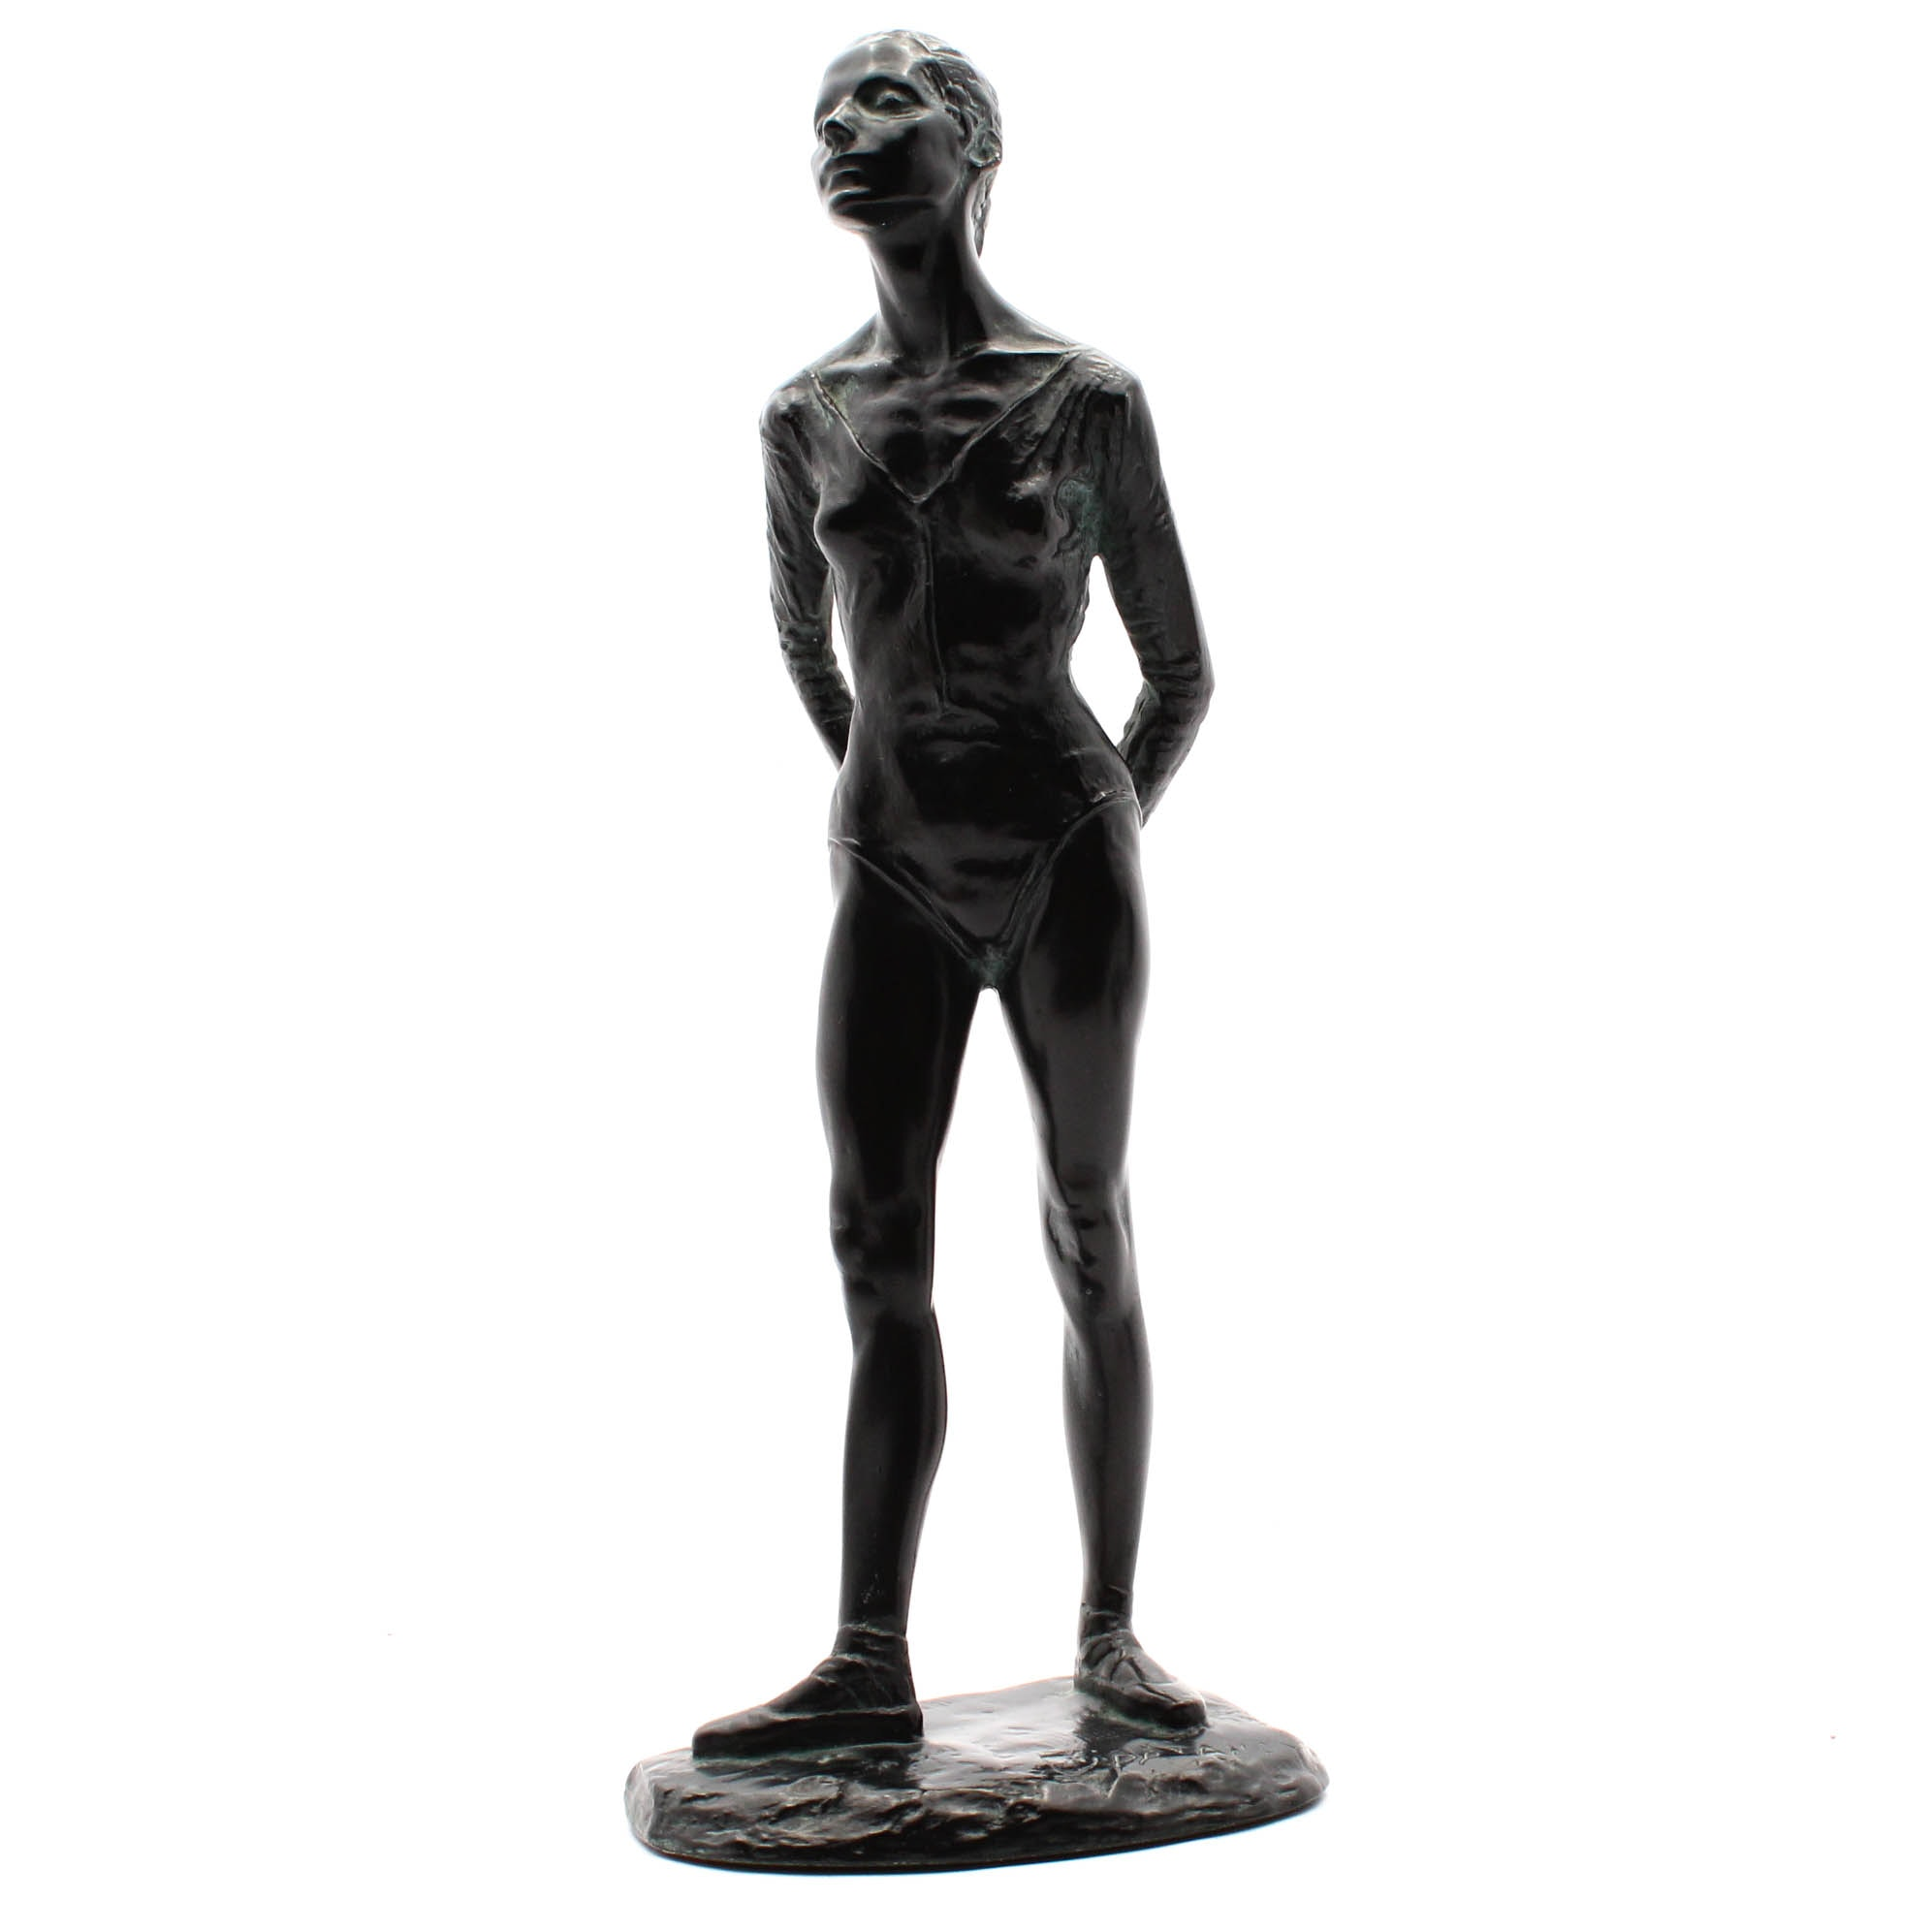 Resin Sculpture of Ballet Dancer after Anthony Cipriano